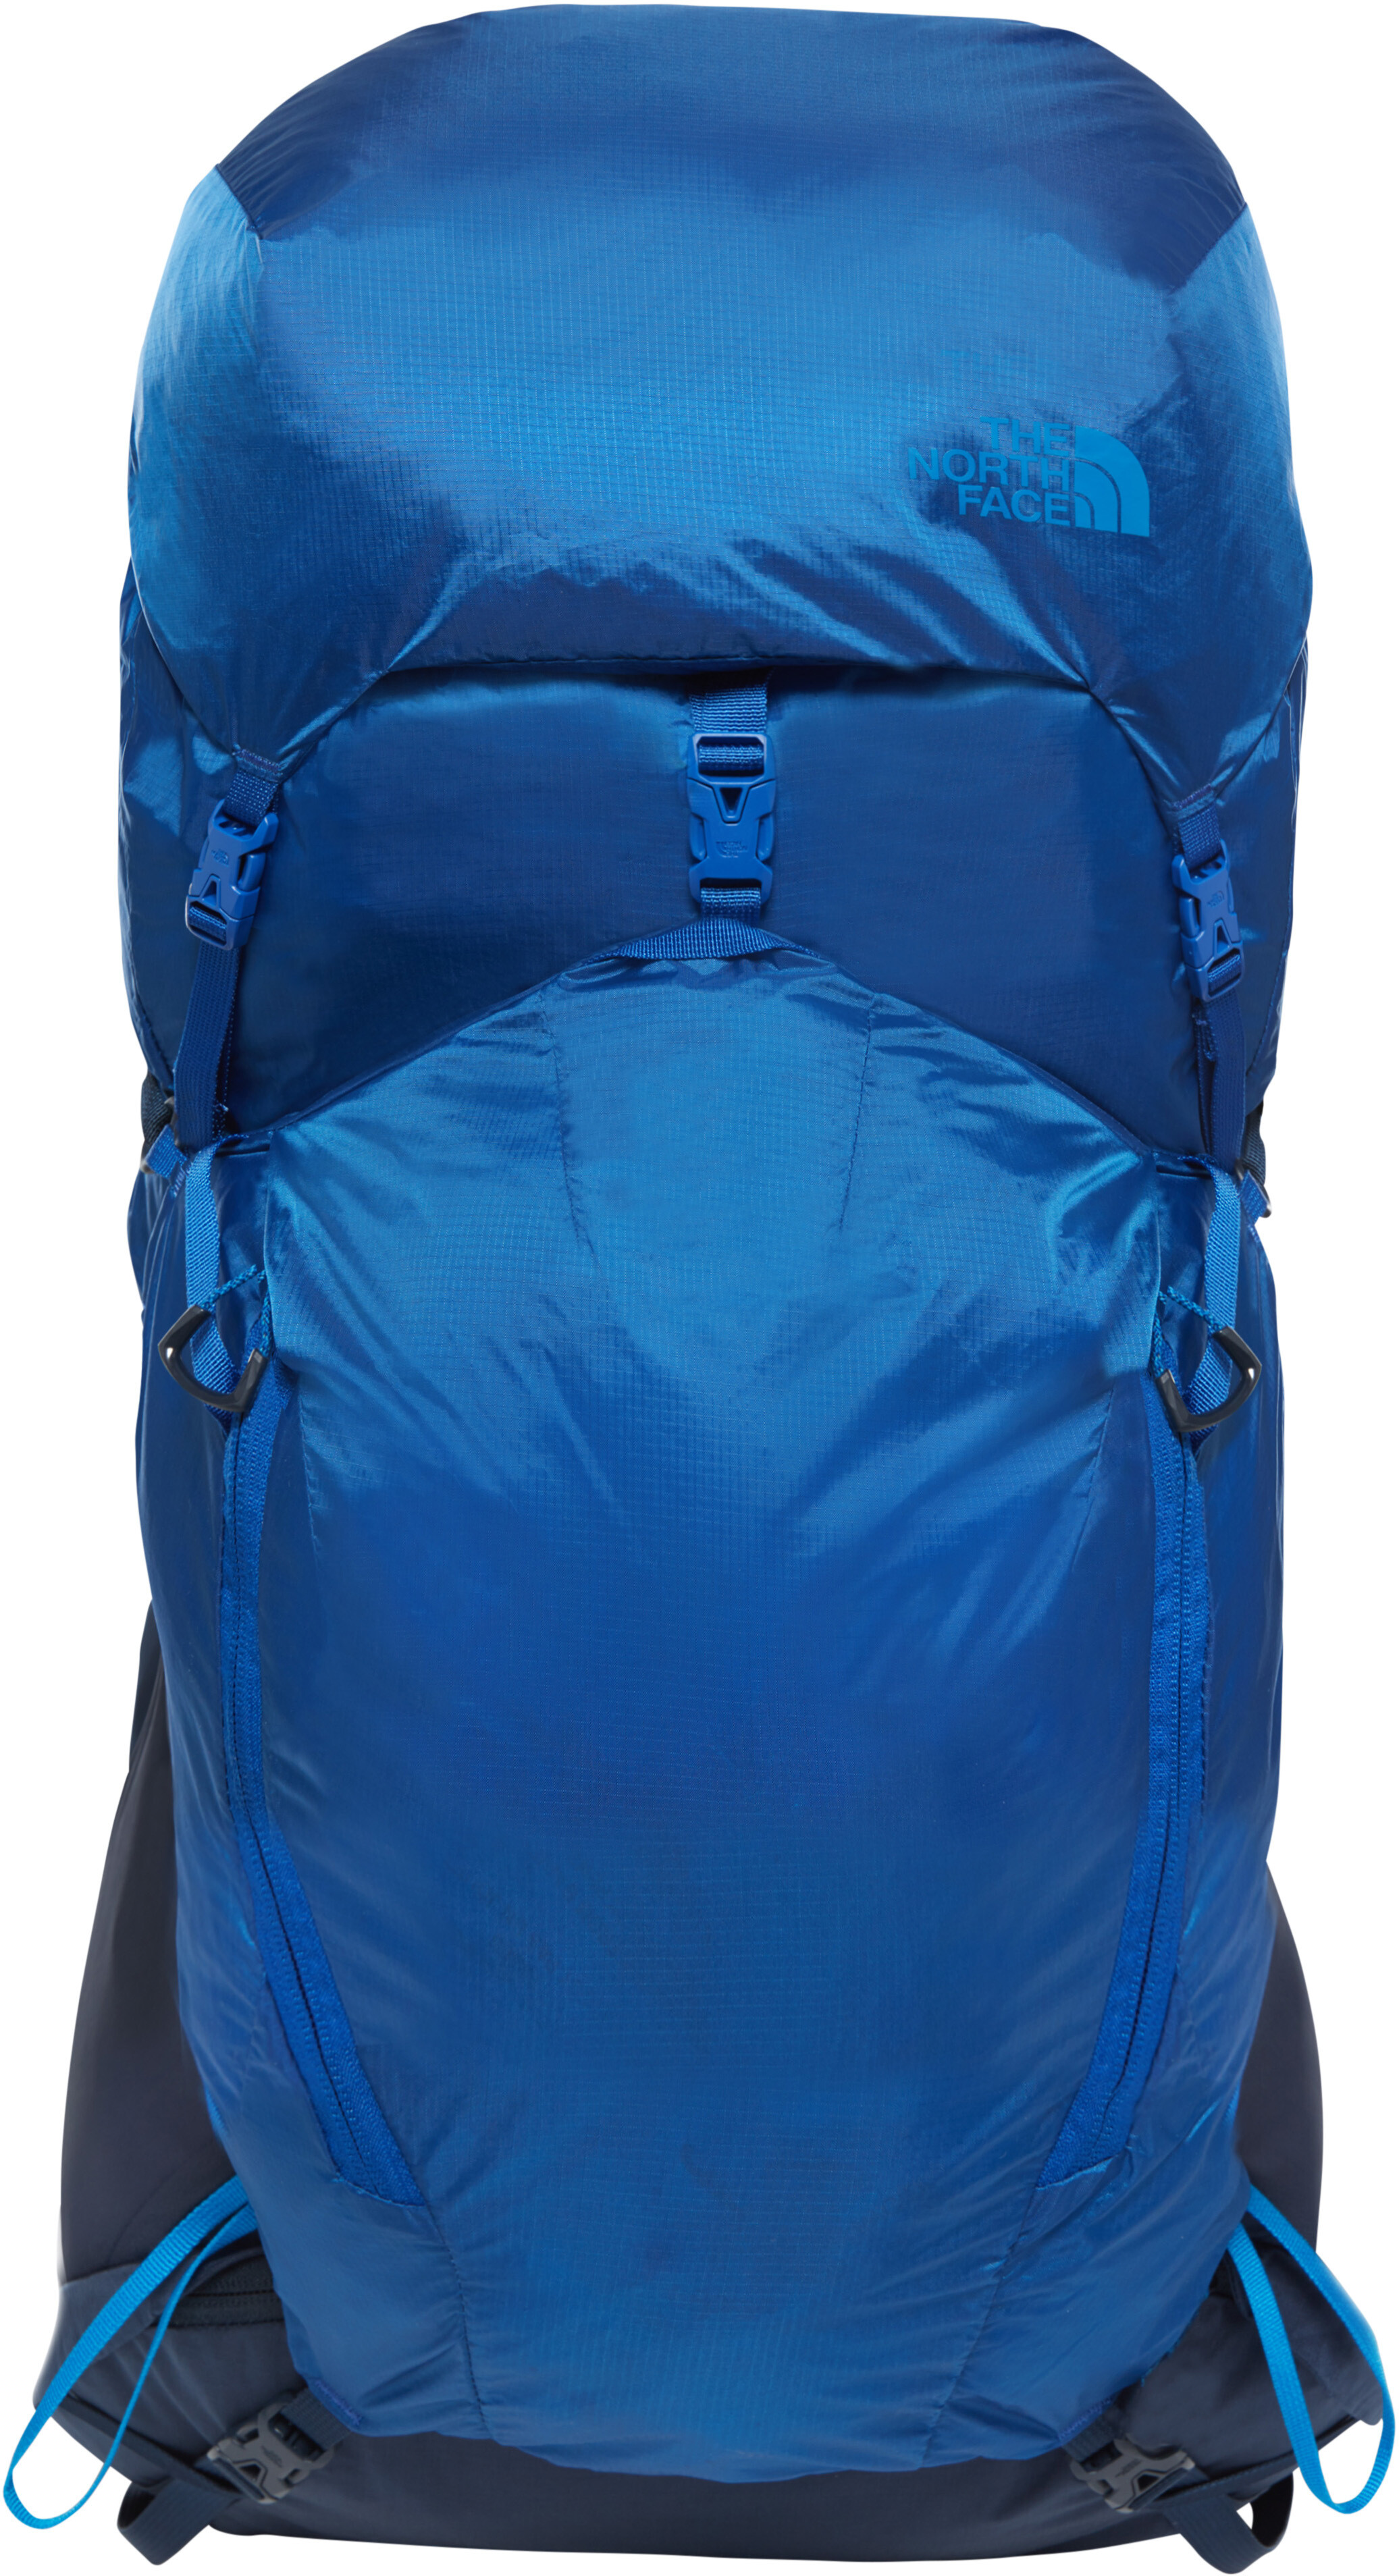 0f7fdd2d8 The North Face Banchee 65 Backpack urban navy/bright cobalt blue